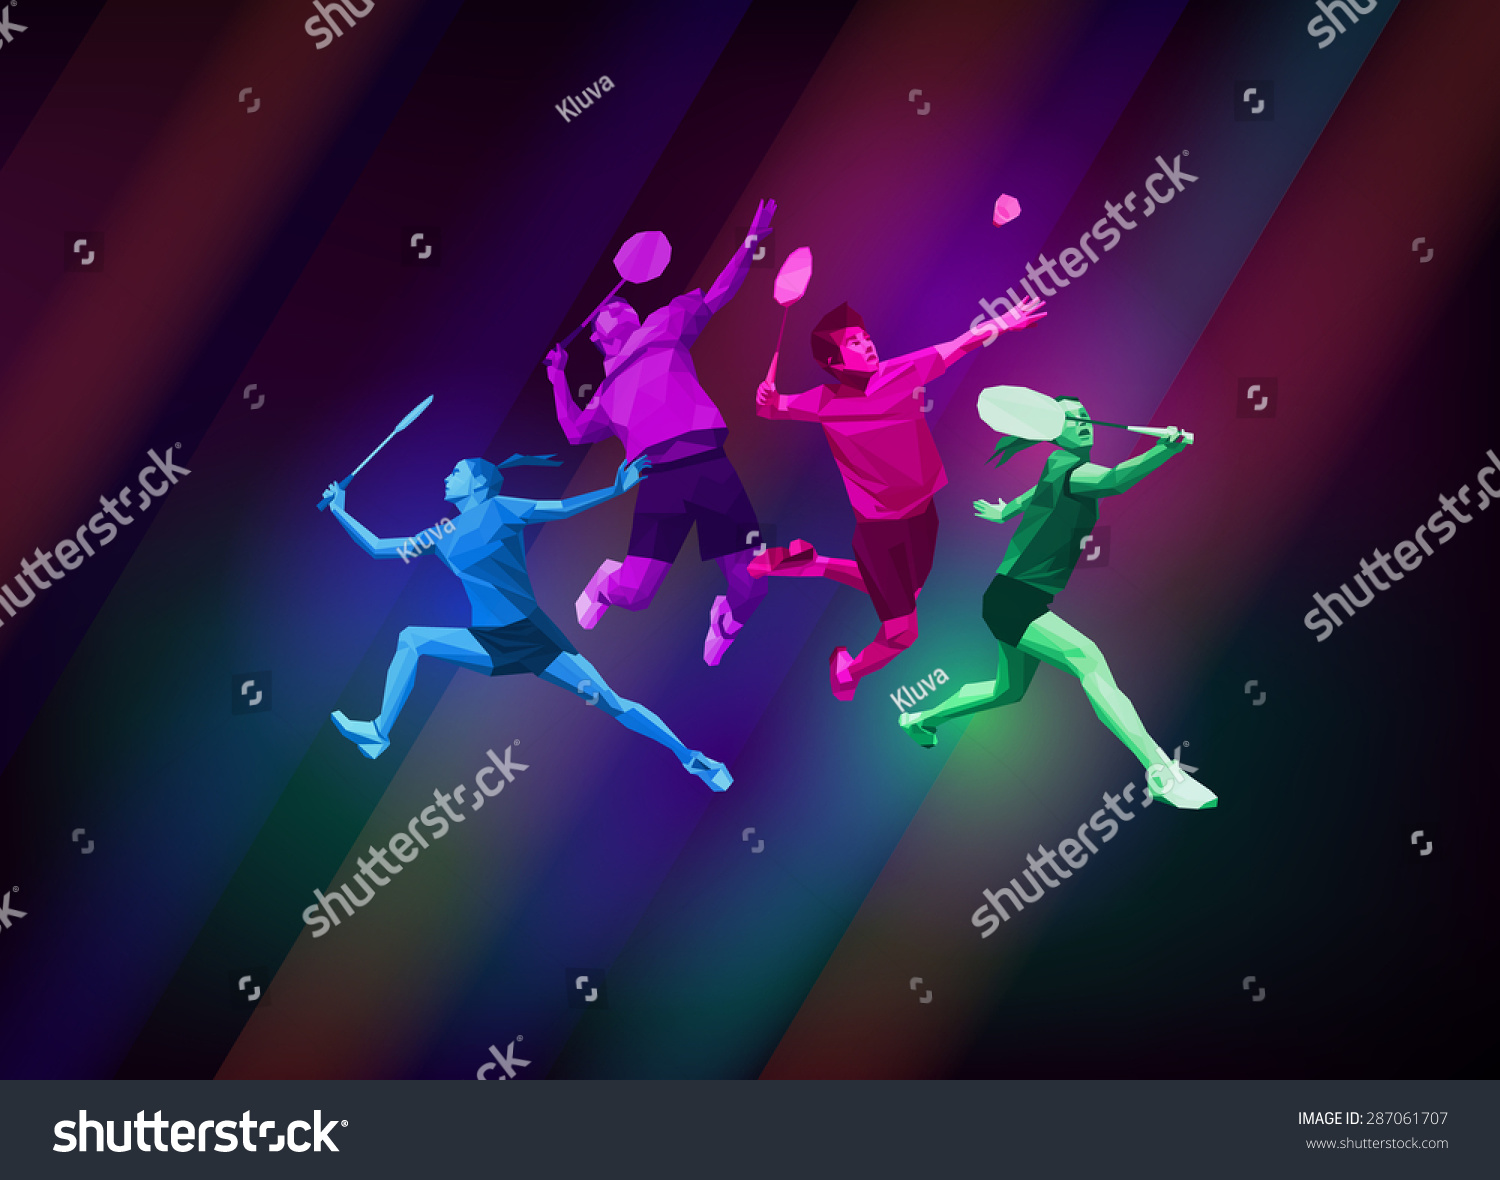 More About Music Poster Background High Resolution Update: Sports Poster Badminton Players Team Colorful Stock Vector